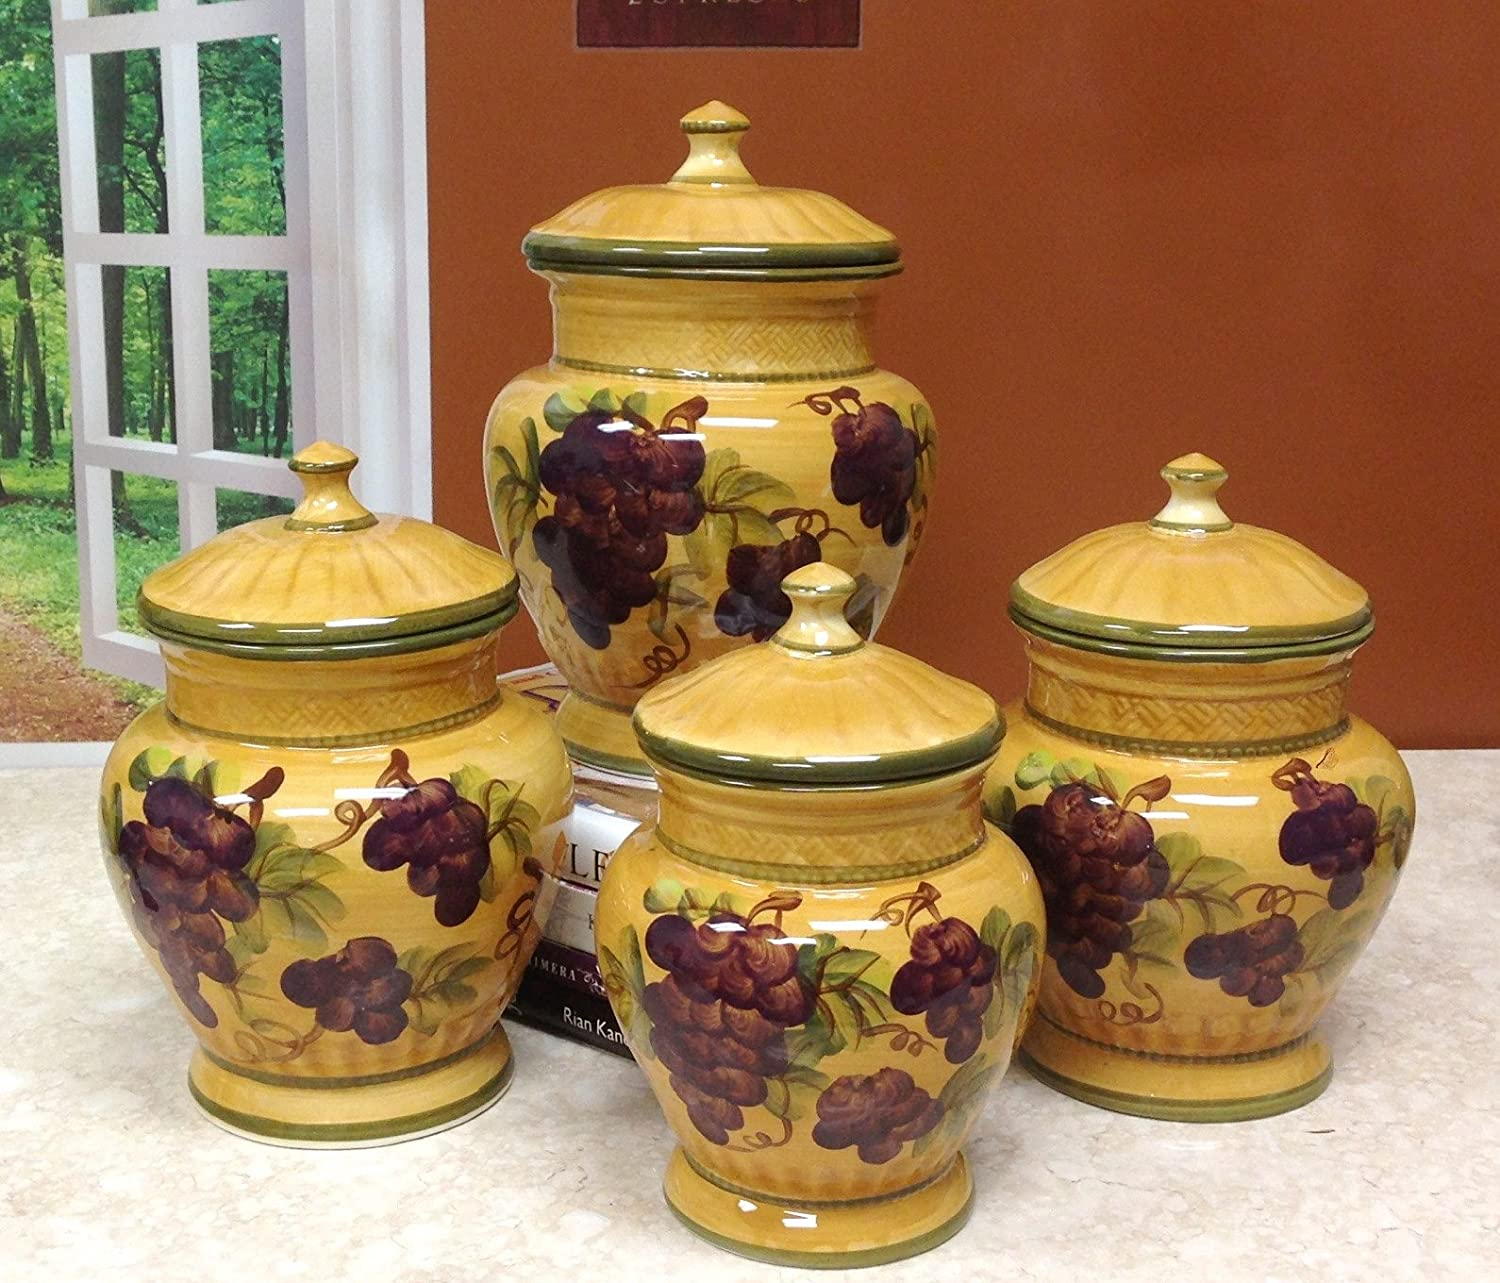 Tuscany Grapes 4pc/canisters Kitchen Decor Set